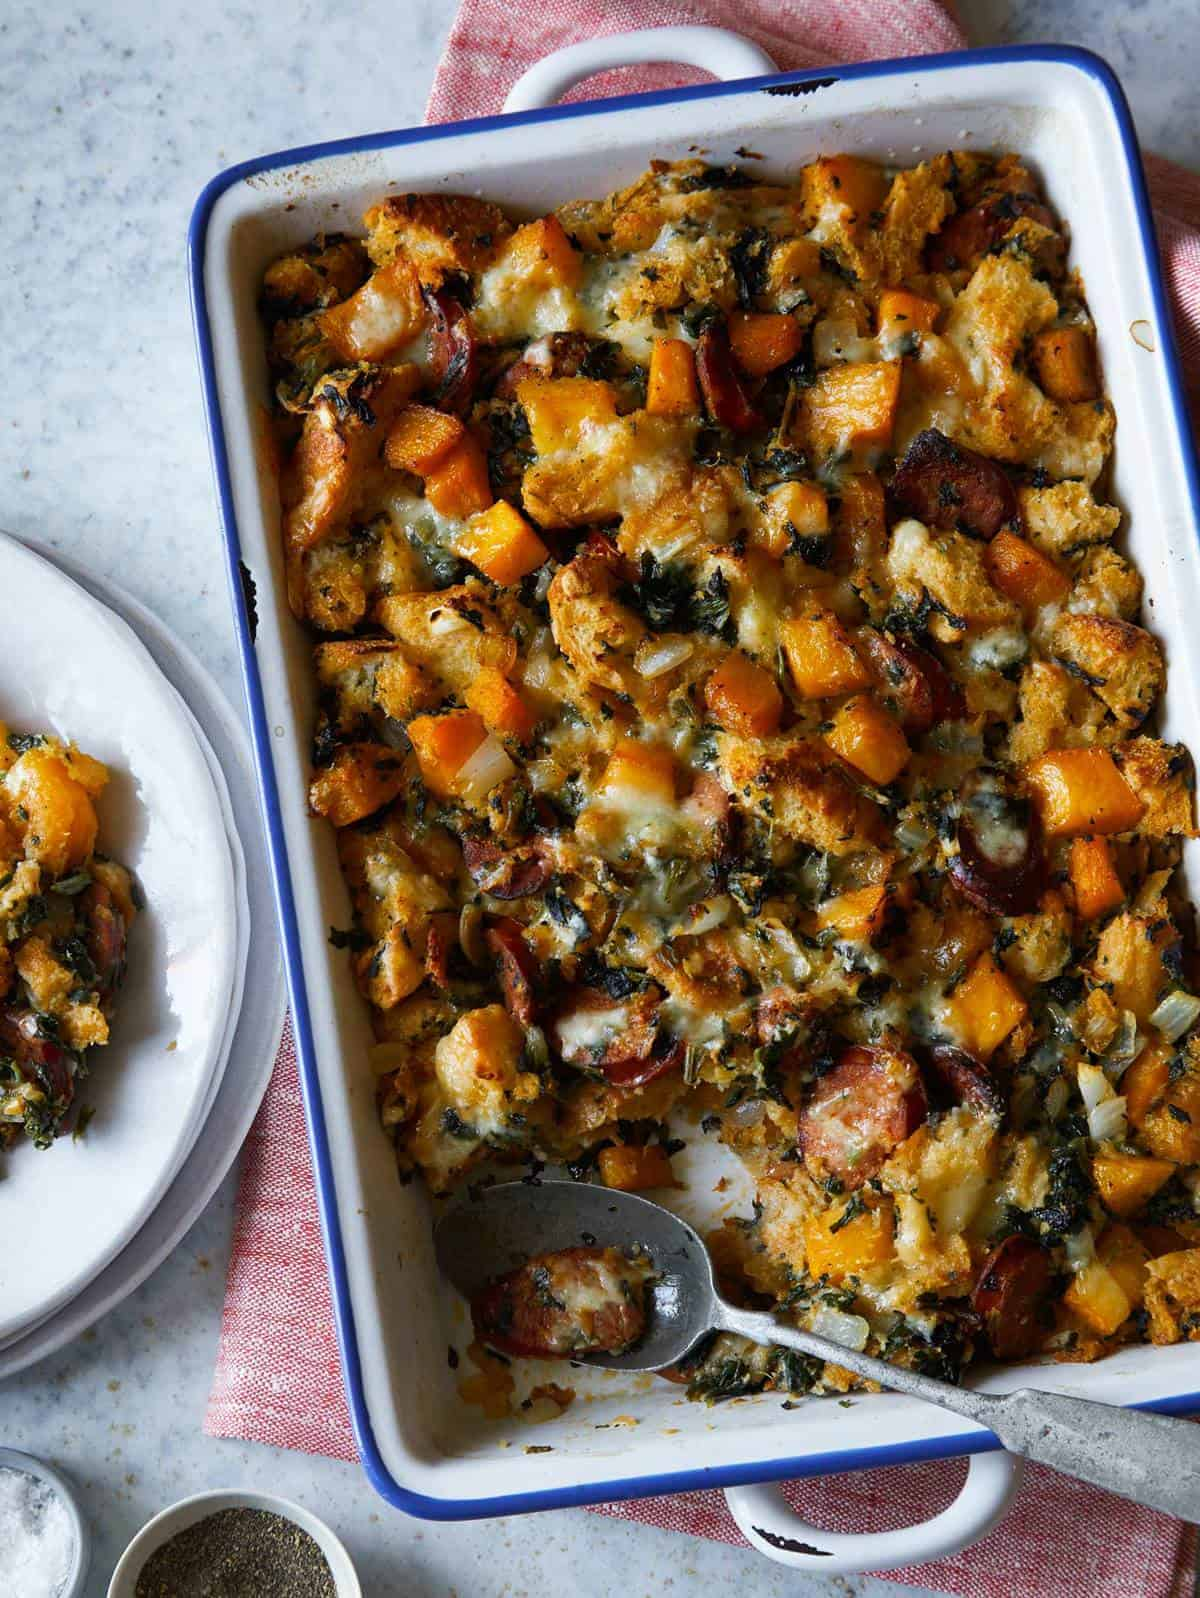 Butternut squash sage stuffing with a spoon and served on a plate.